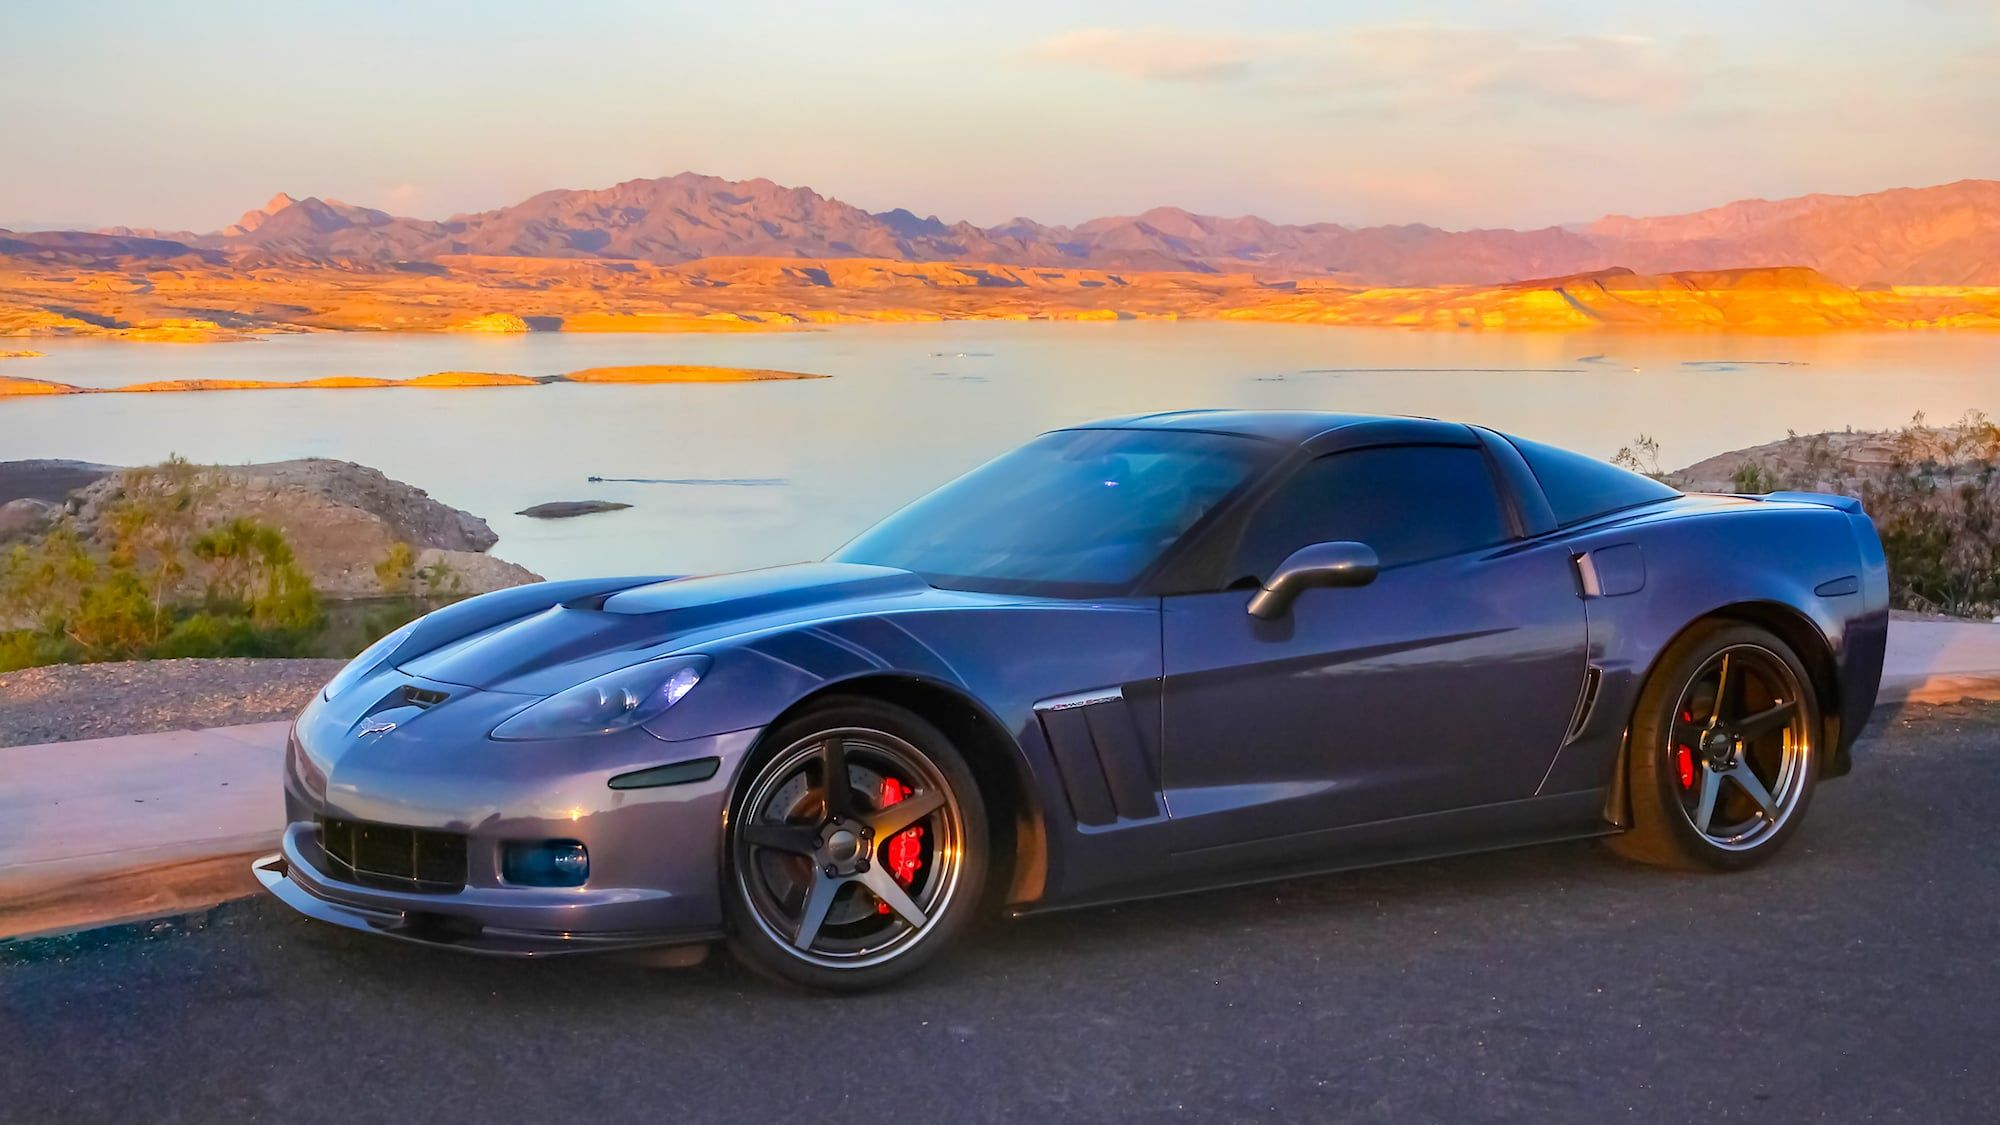 Pin By Stormin Norman On Corvettes Chevrolet Corvette Corvette C6 Z06 Corvette Grand Sport